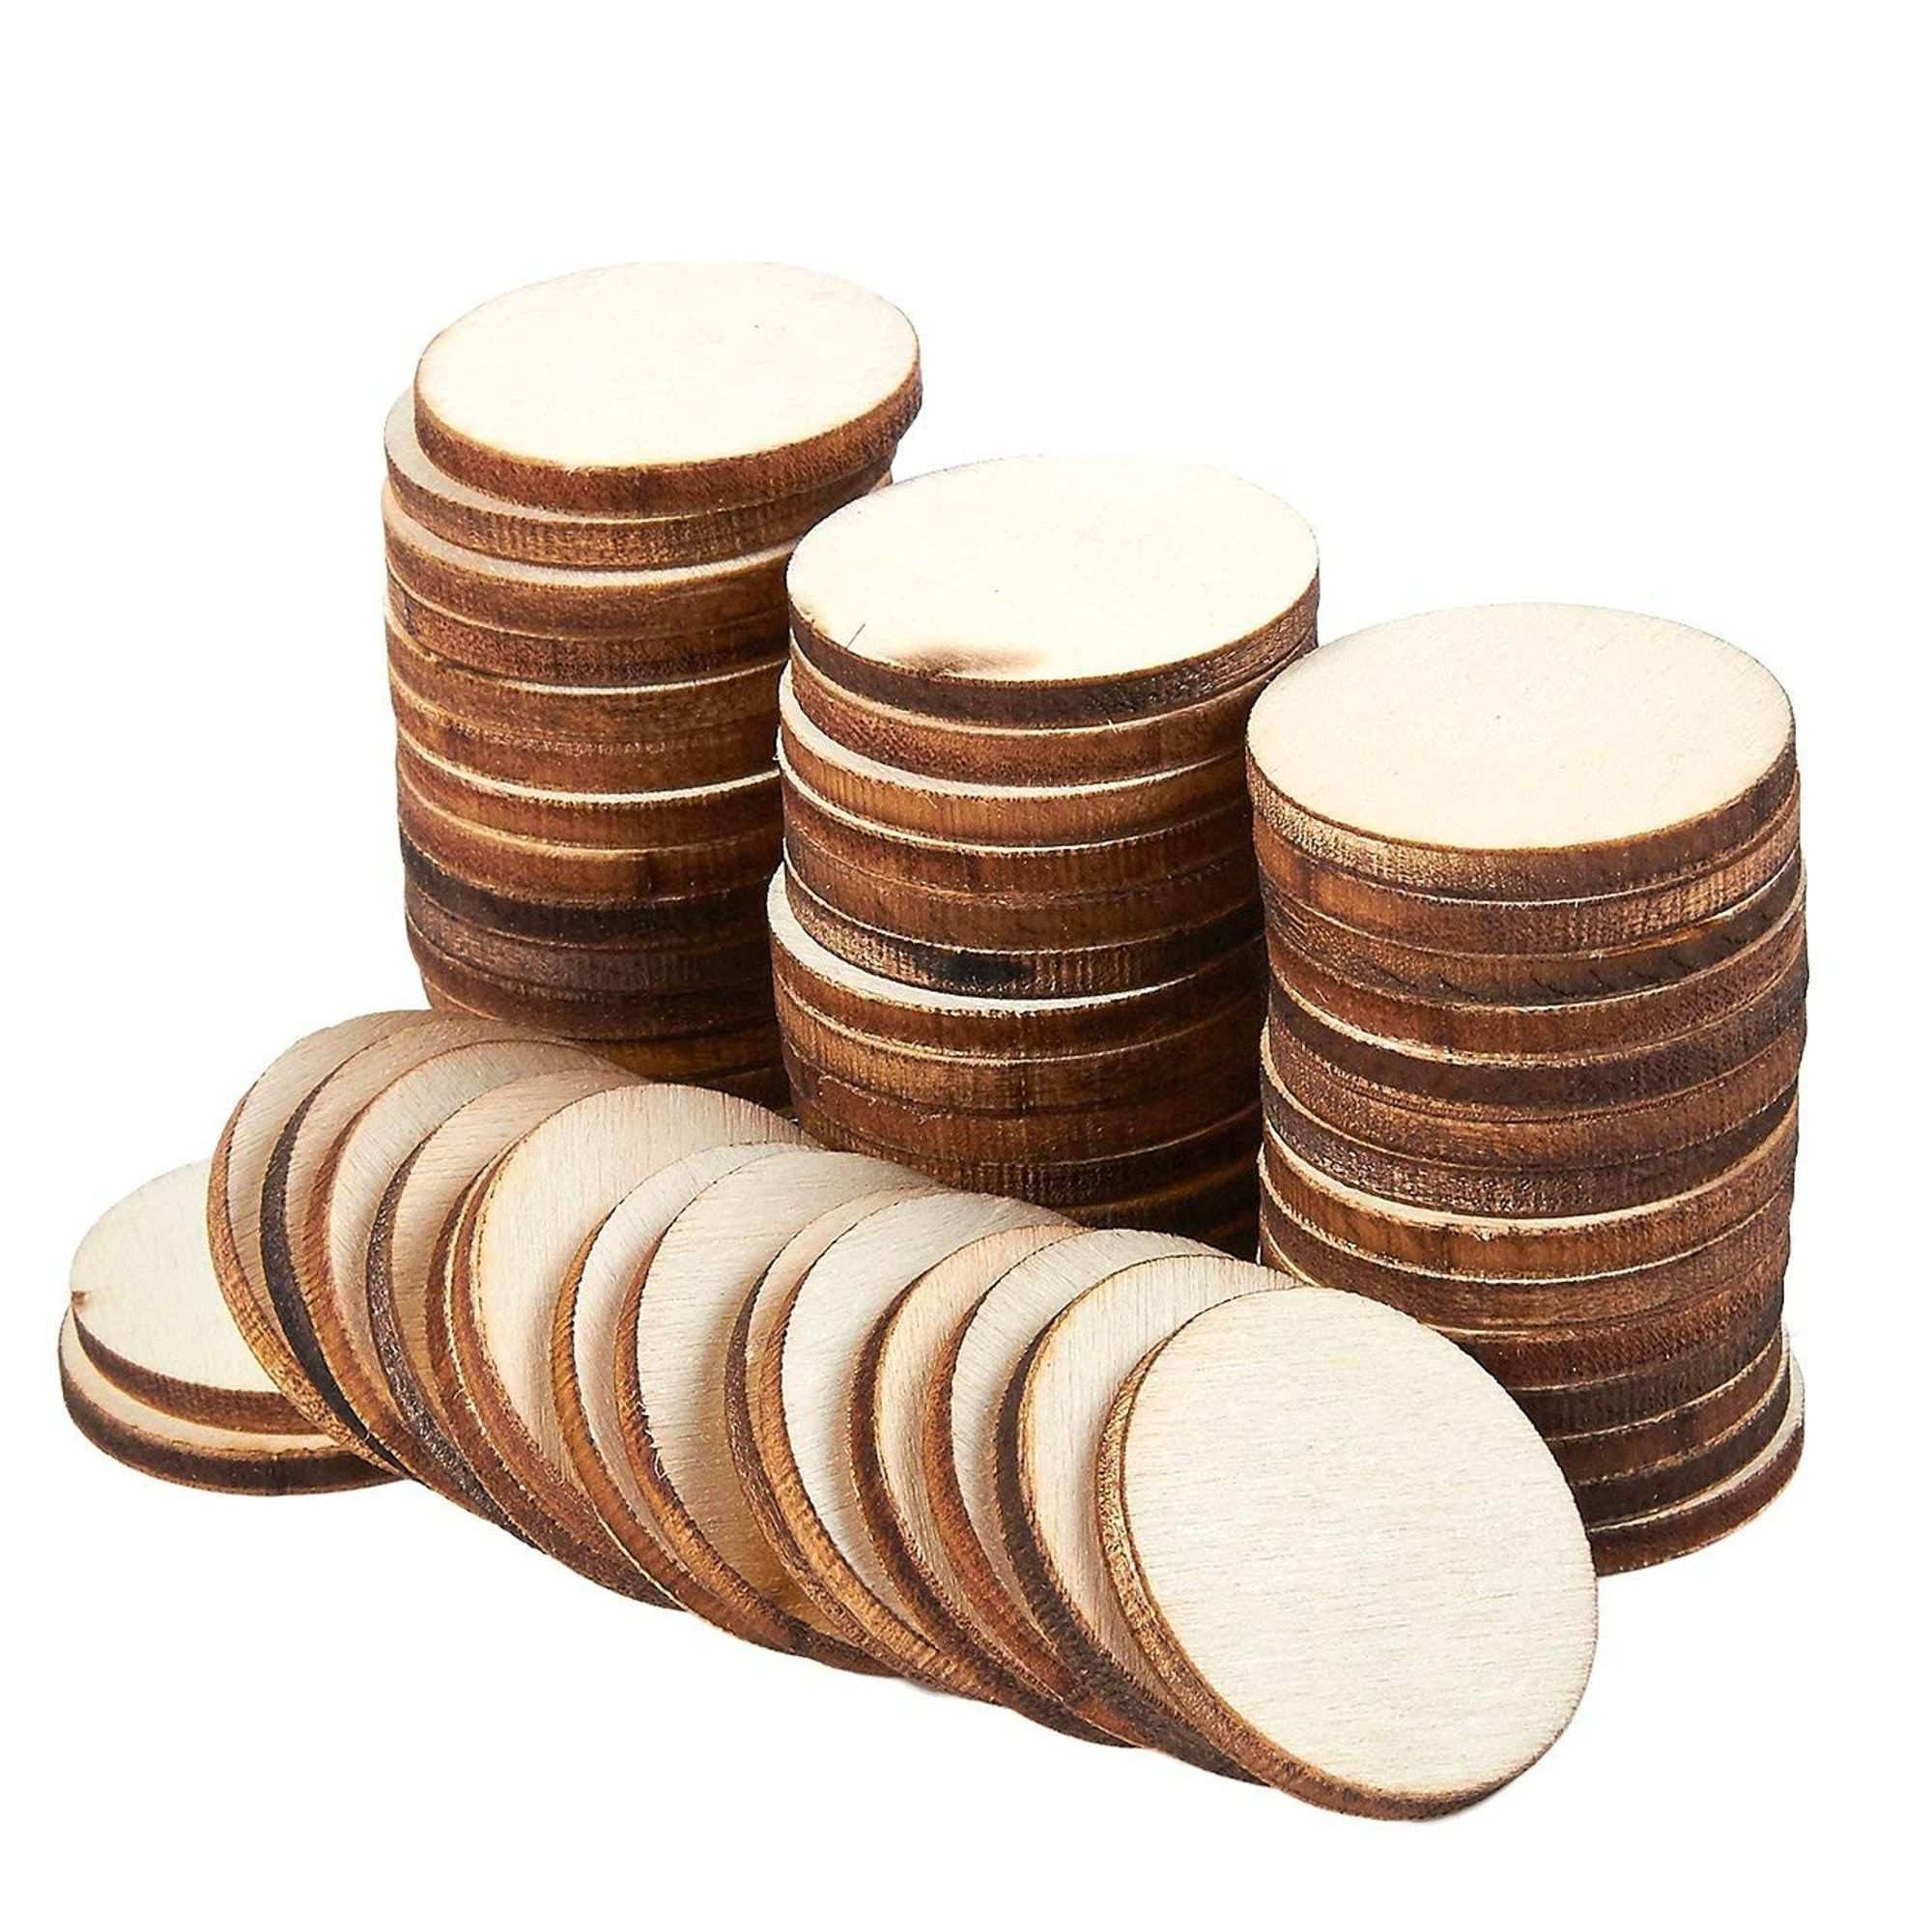 Round Wood Cutouts Tiles Discs for Crafts Supplies-4 Inch 24 Pack-Natural Rustic Wood Slice Ornaments to Decorate Circles Ornaments Unfinished Rounds Blank Coasters 4 inch // 10 cm